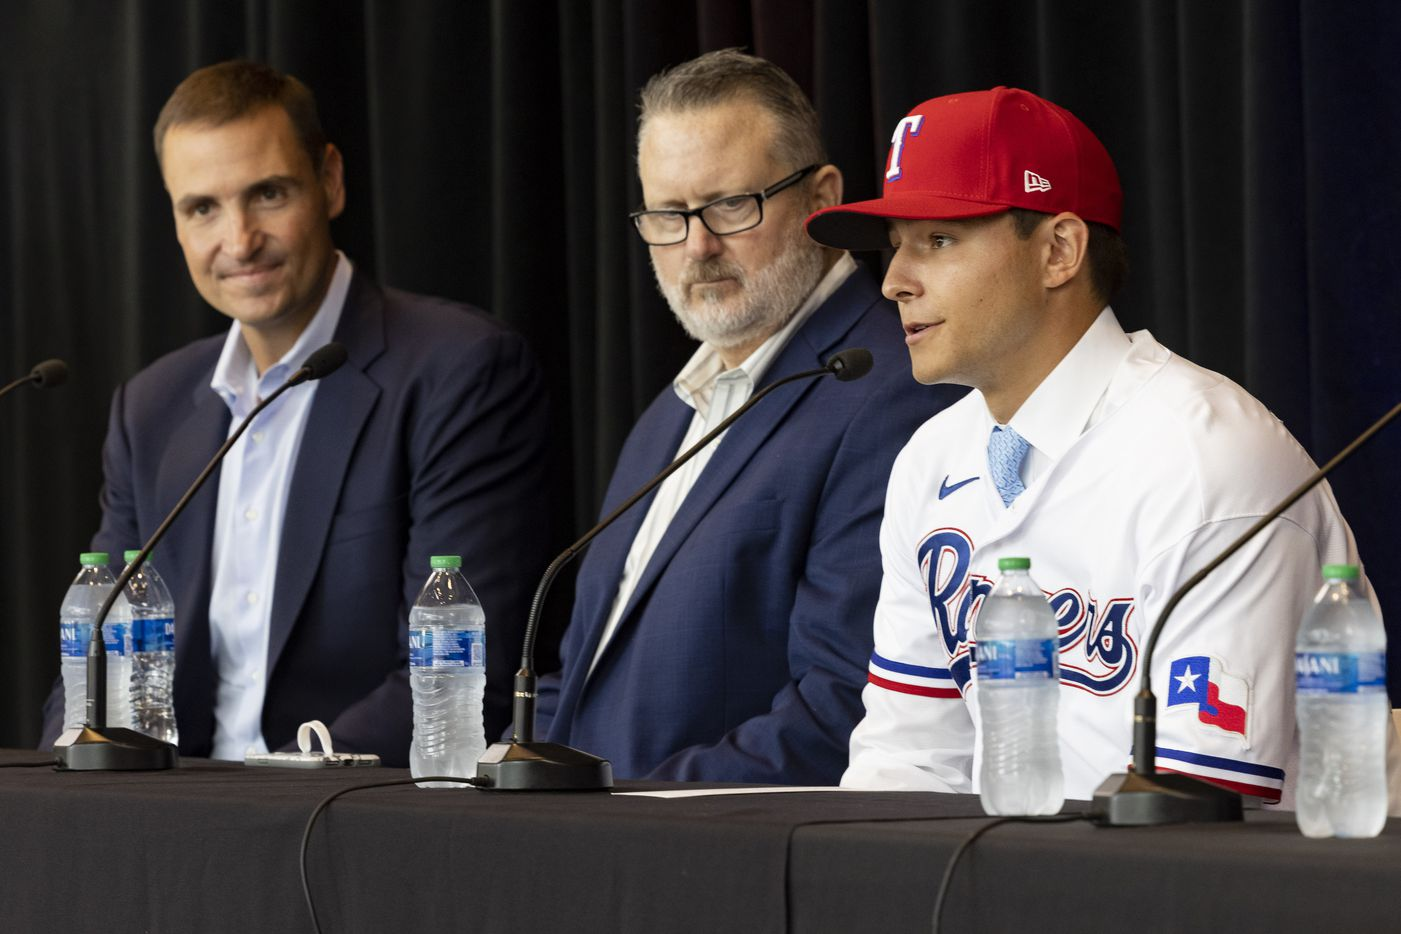 (From left) Chris Young, Texas Rangers Executive Vice President and General Manager, Kip Fagg, Rangers Senior Director of Amateur Scouting, listen to Jack Leiter from Vanderbilt University speak during a press conference announcing his signing on Tuesday, July 27, 2021, at Globe Life Field in Arlington. Leiter was the club's 2021 MLB Draft first round selection and the draft's second overall pick.